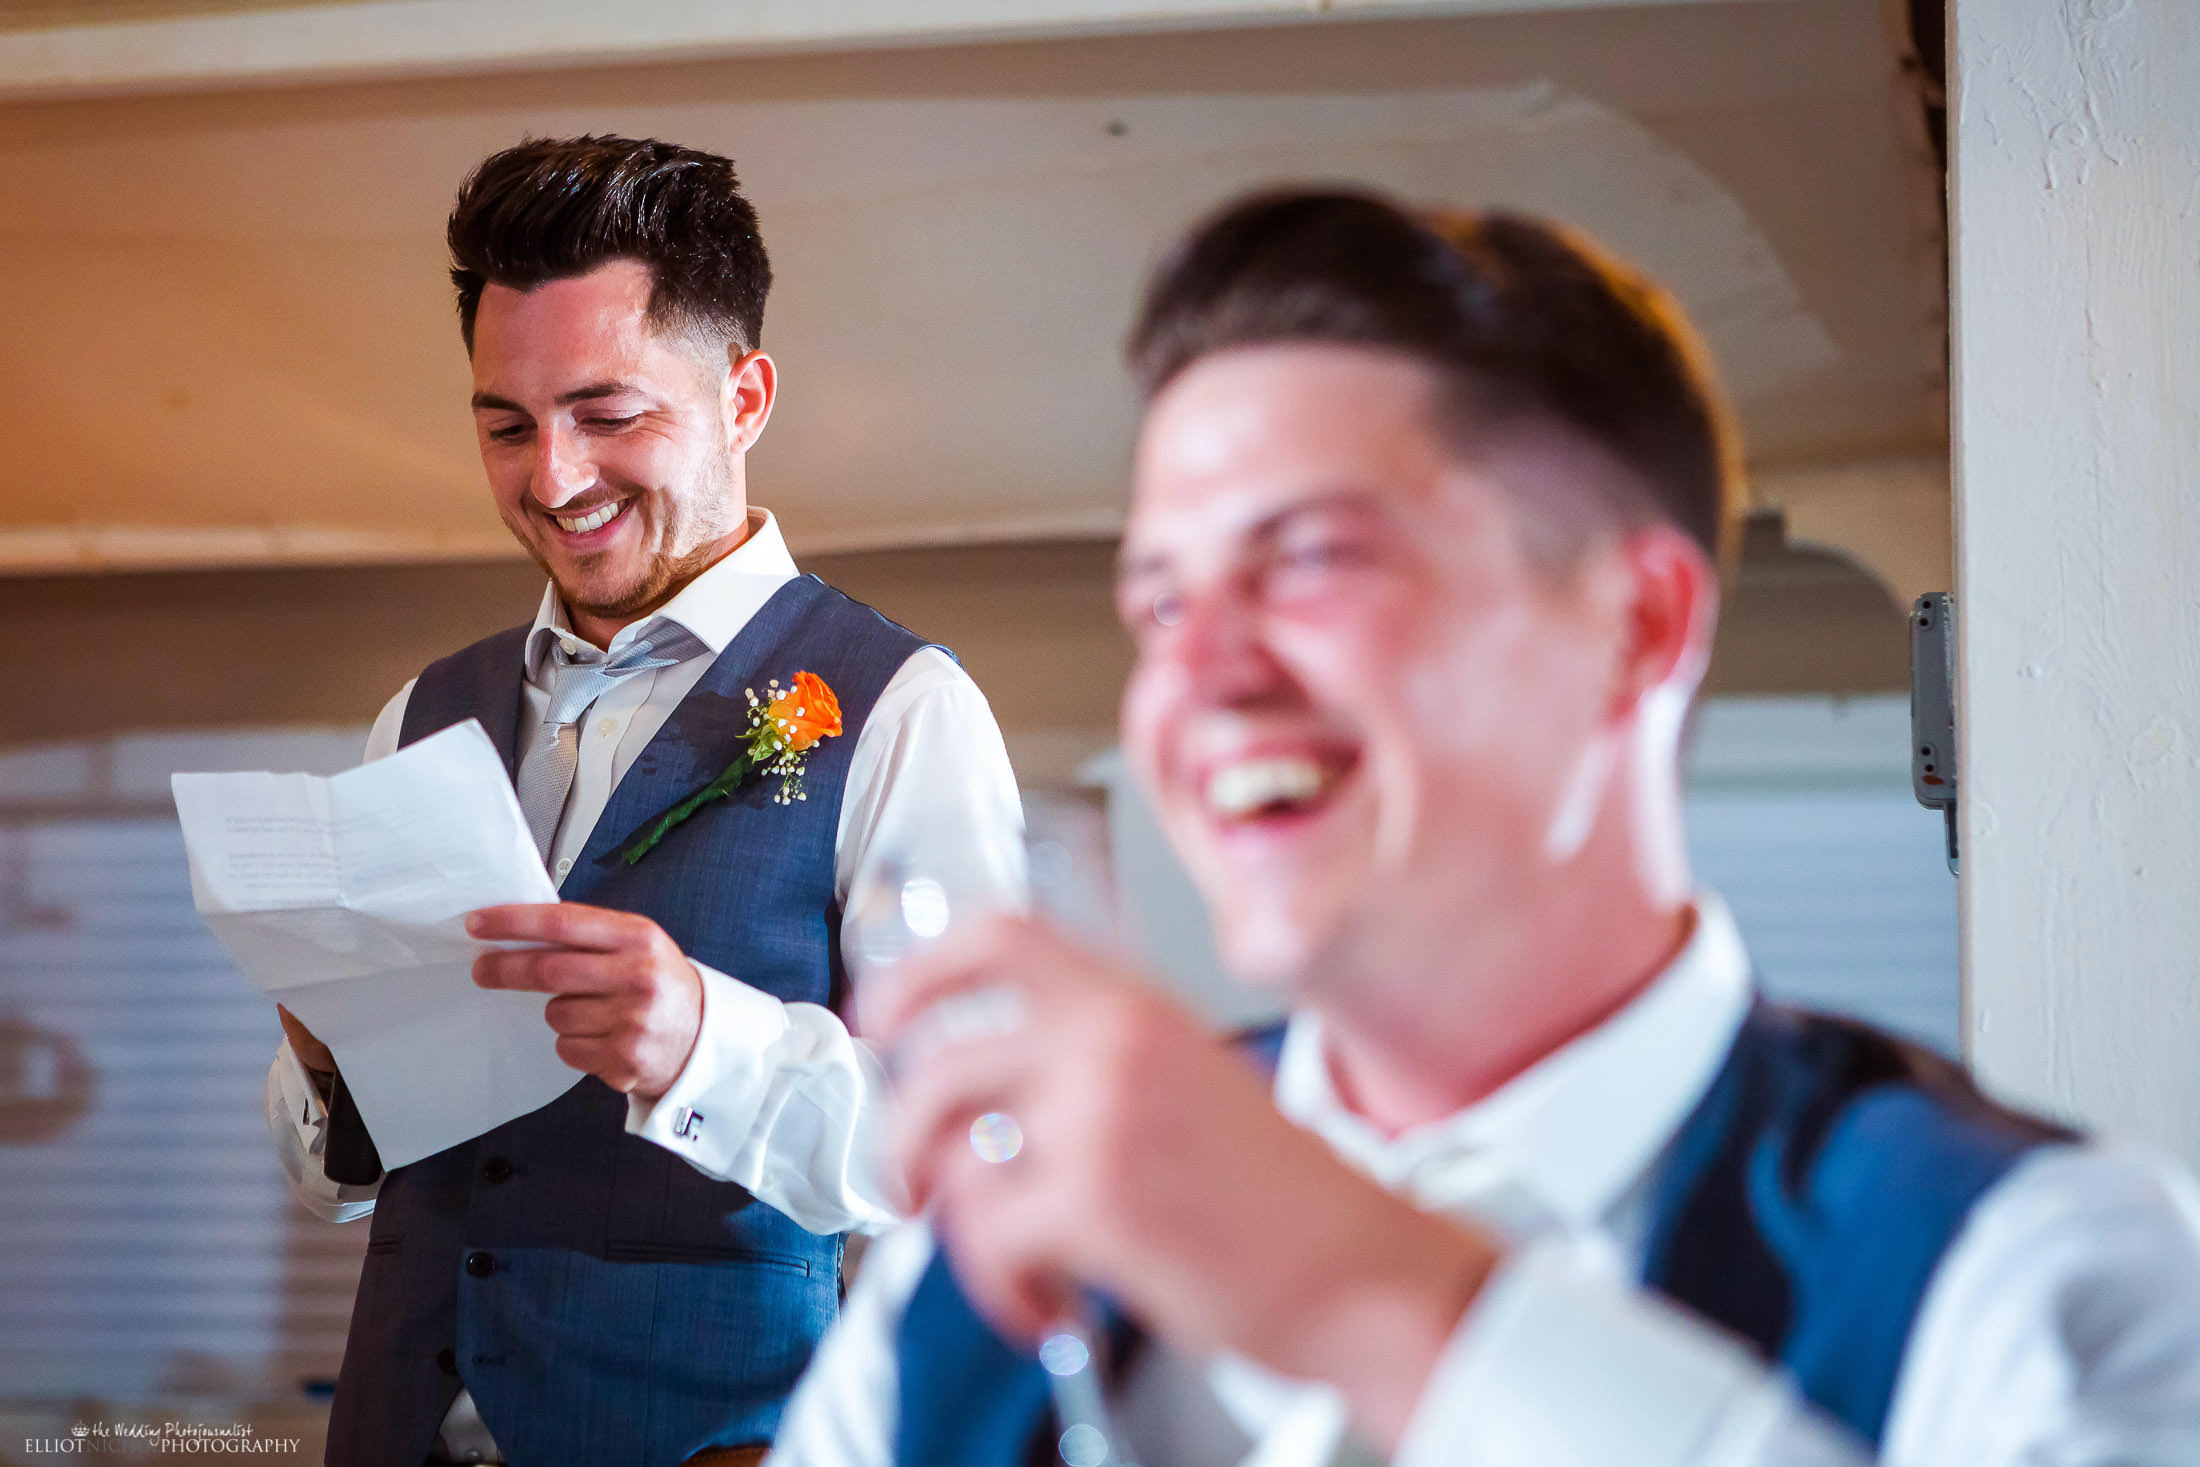 Best man makes the groom laugh during his wedding reception speech. Photo by Elliot Nichol Photography.